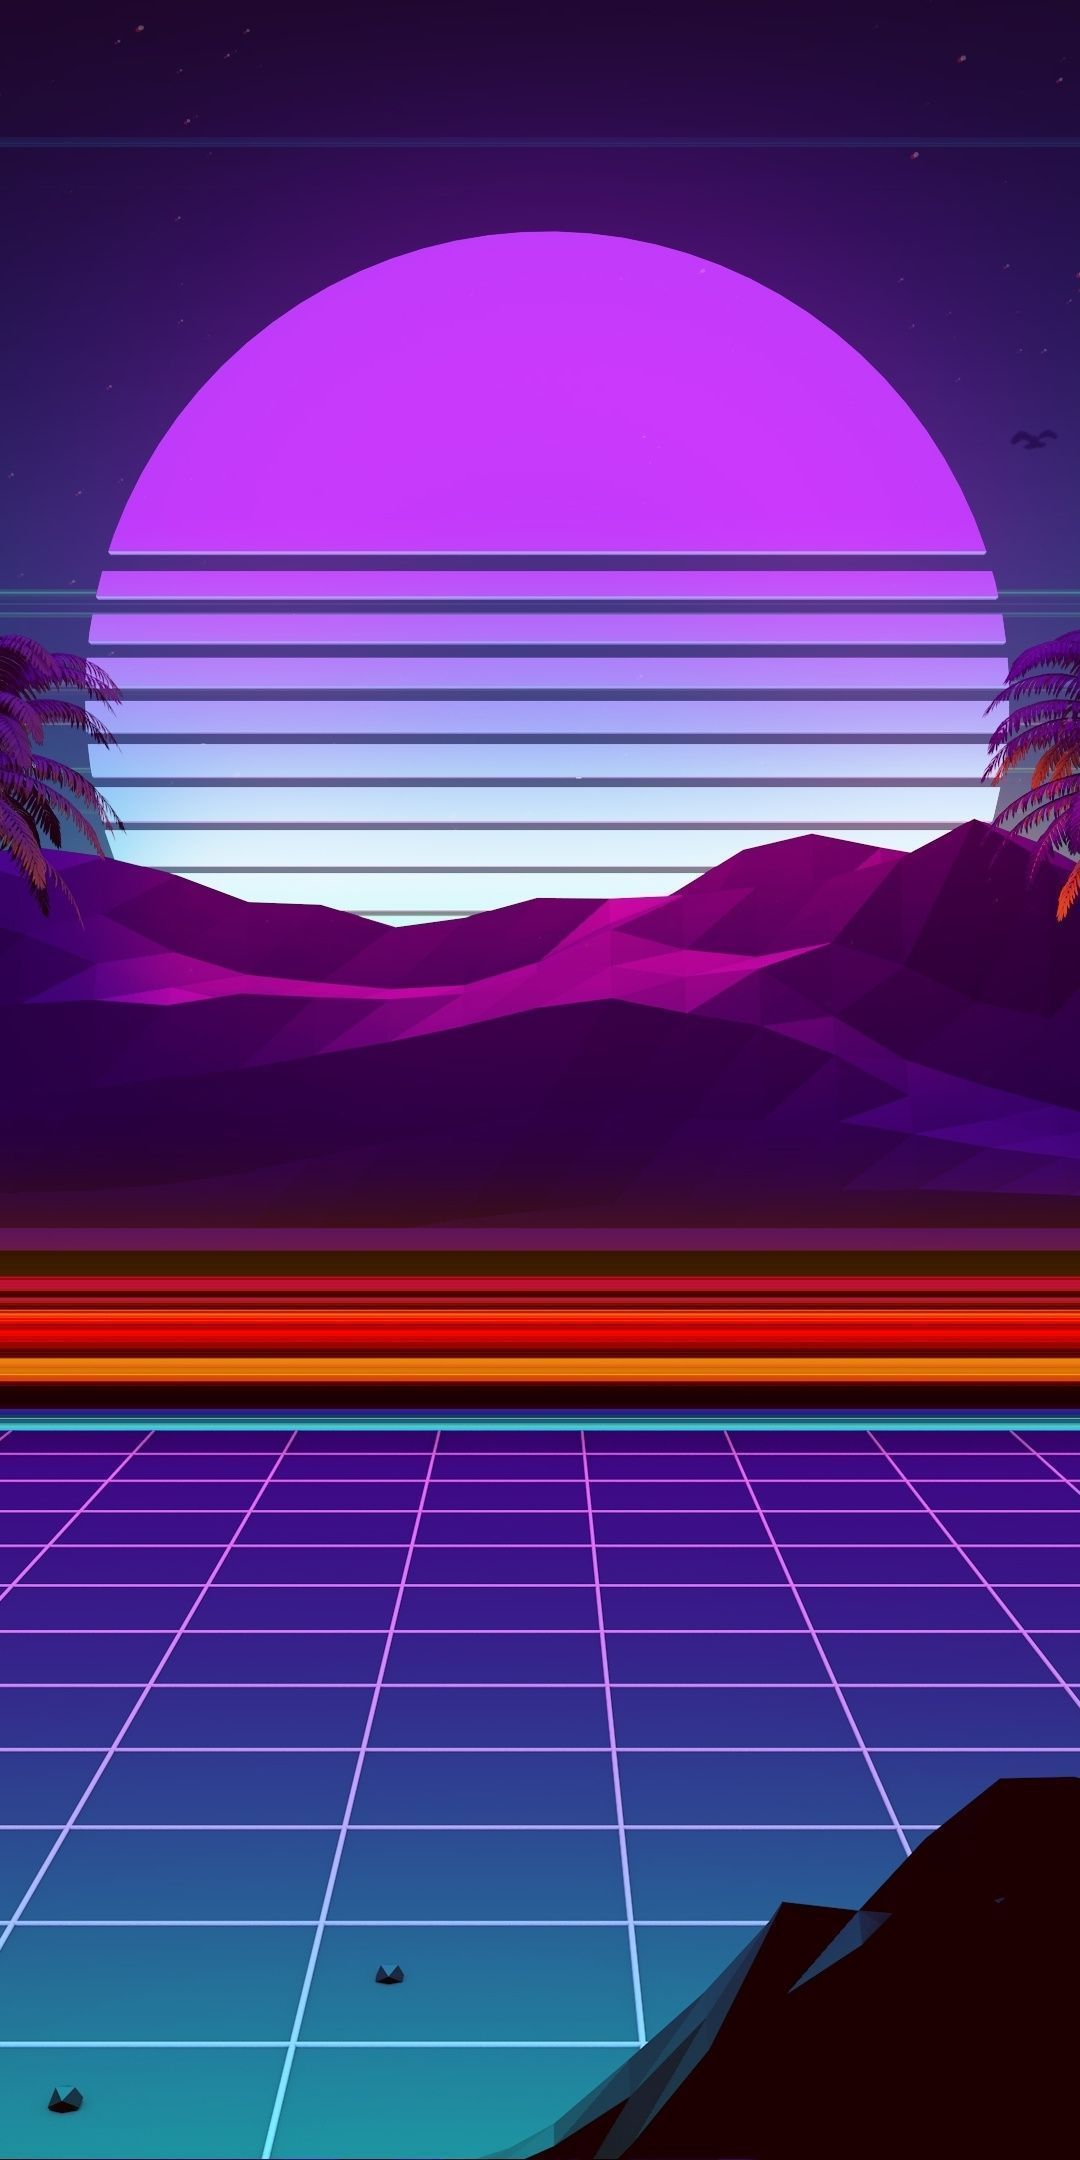 1080x2160 Night Moonlight Mountain Synthwave And Retrowave Digital Art Wallpaper Ios13wallpaper 1080x2160 In 2020 Vaporwave Wallpaper Neon Artwork Retro Wallpaper